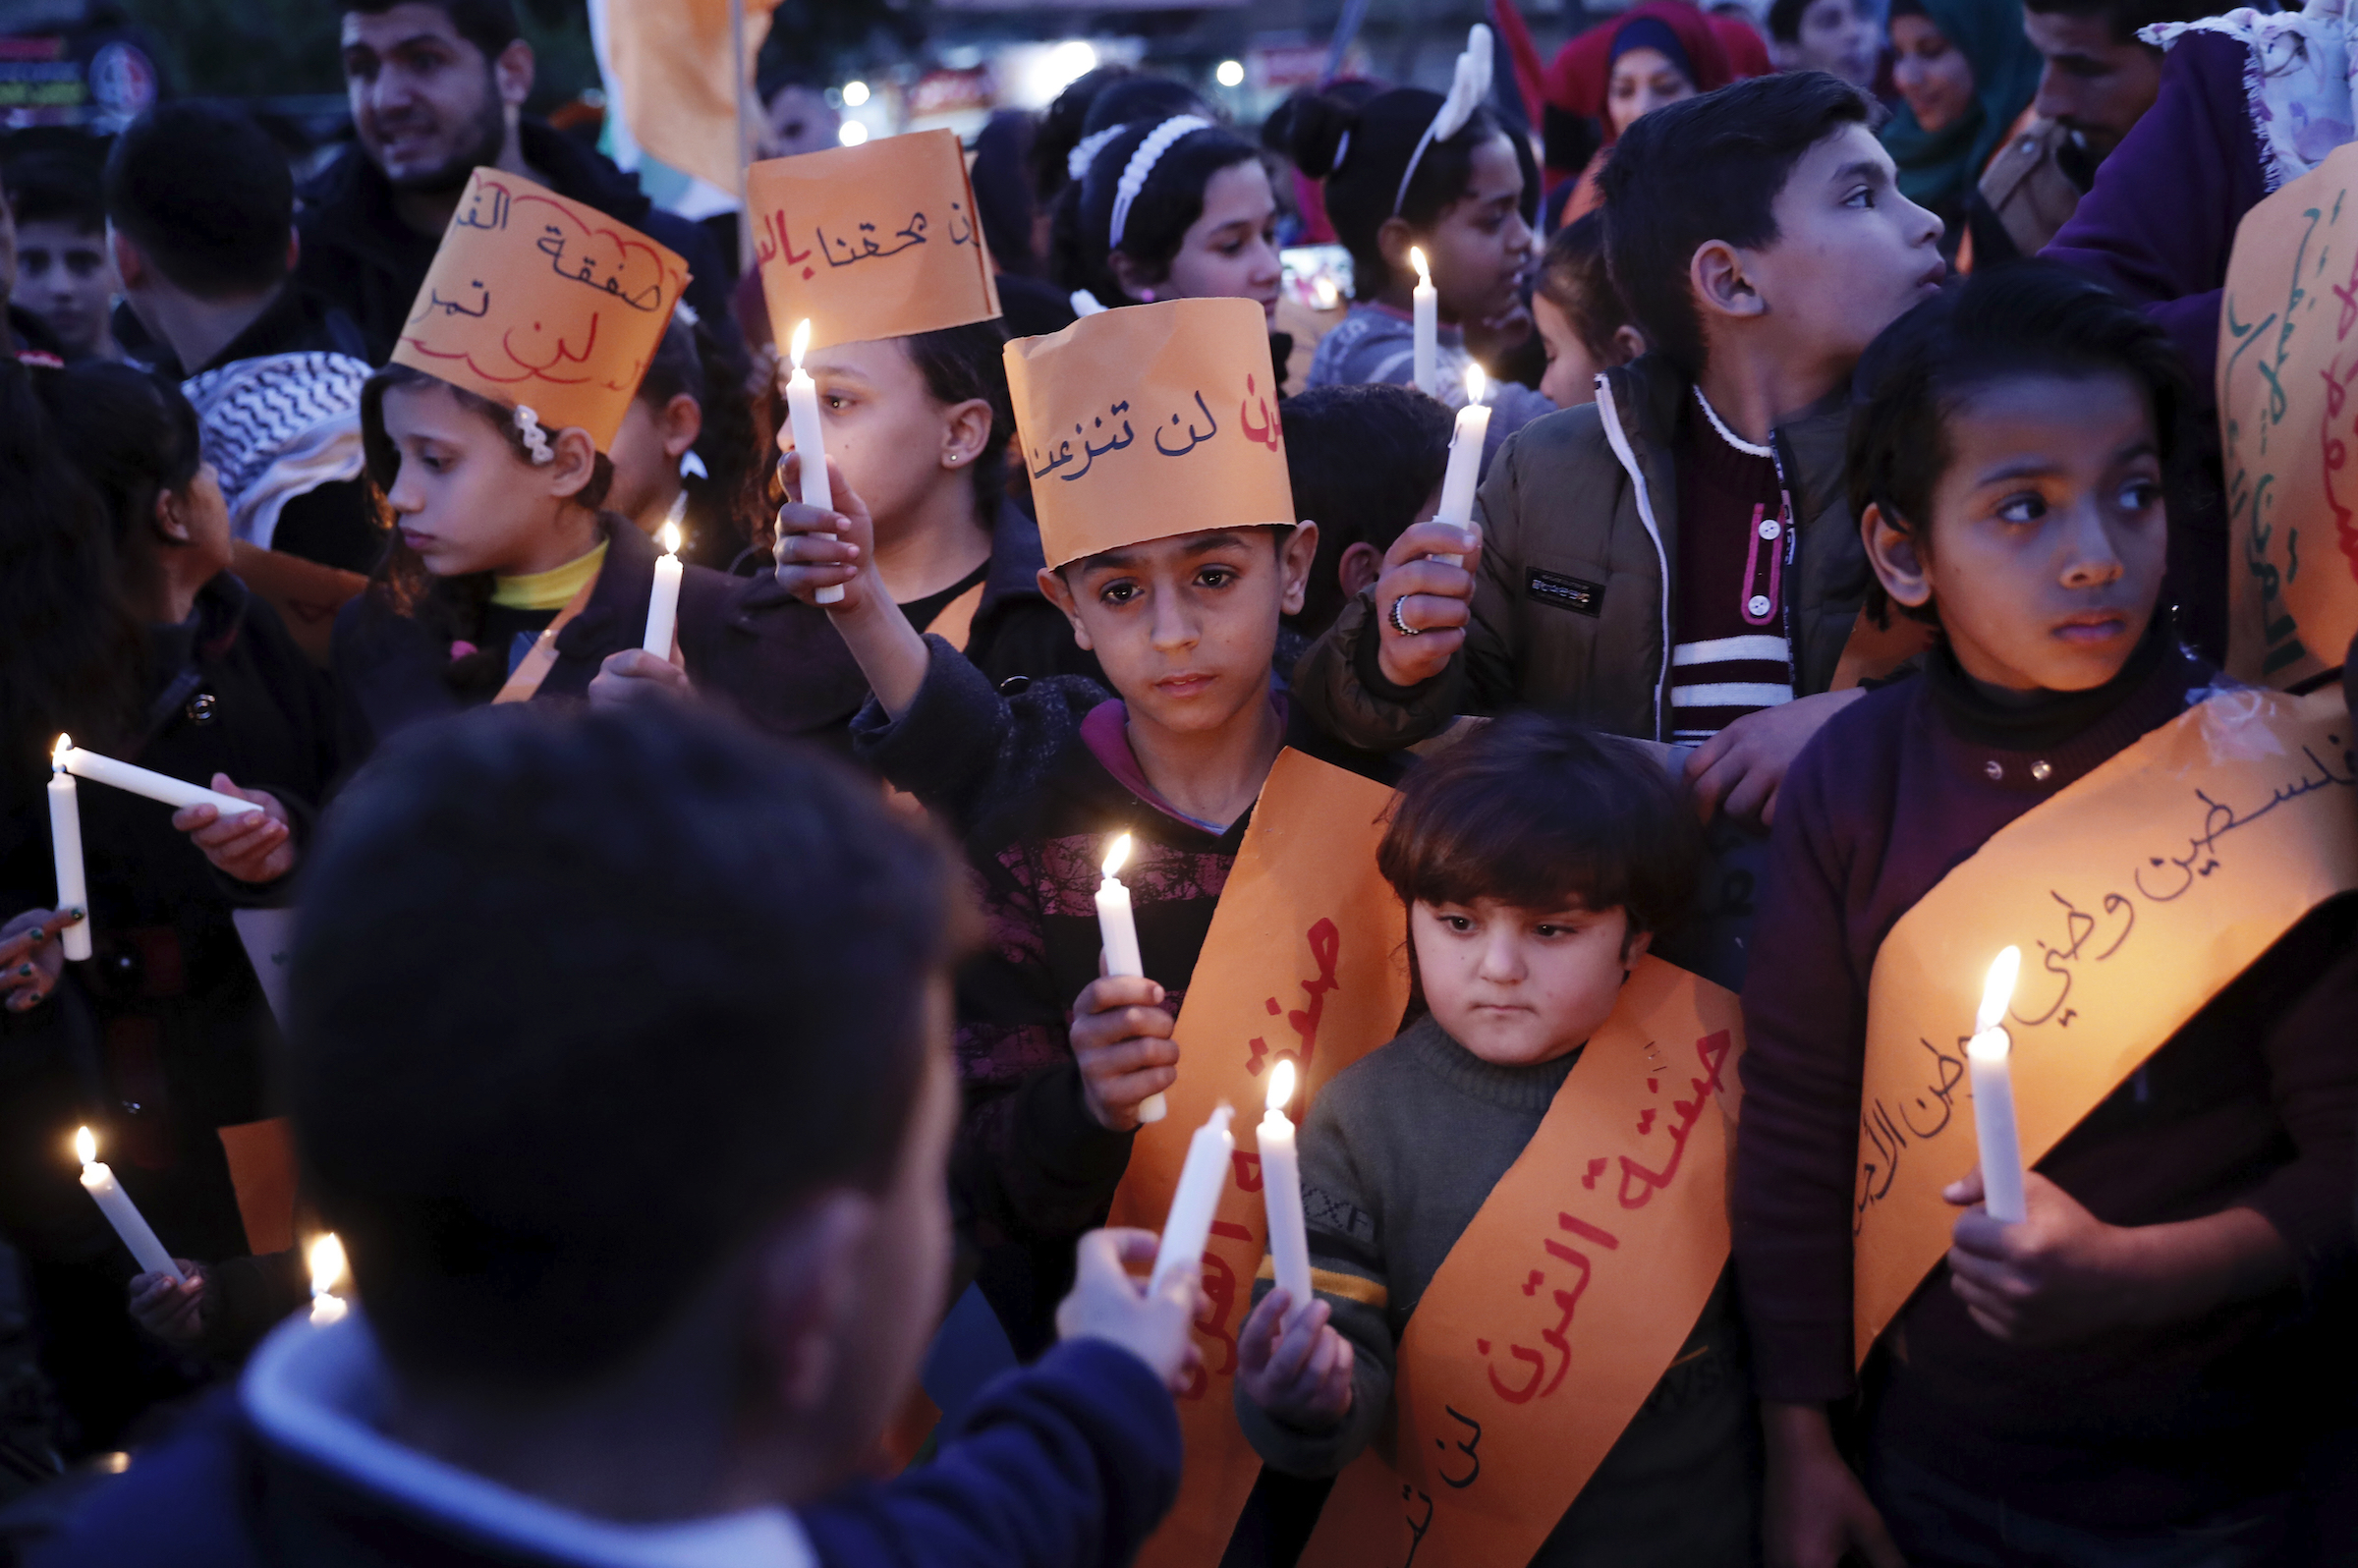 Protesters hold candles during a protest against the Mideast plan announced by the U.S. President Donald Trump, at the road in Jebaliya refugee camp, Gaza Strip, Jan. 30, 2020. Trump's Mideast plan would create a disjointed Palestinian state with a capital on the outskirts of east Jerusalem, beyond the separation barrier built by Israel.